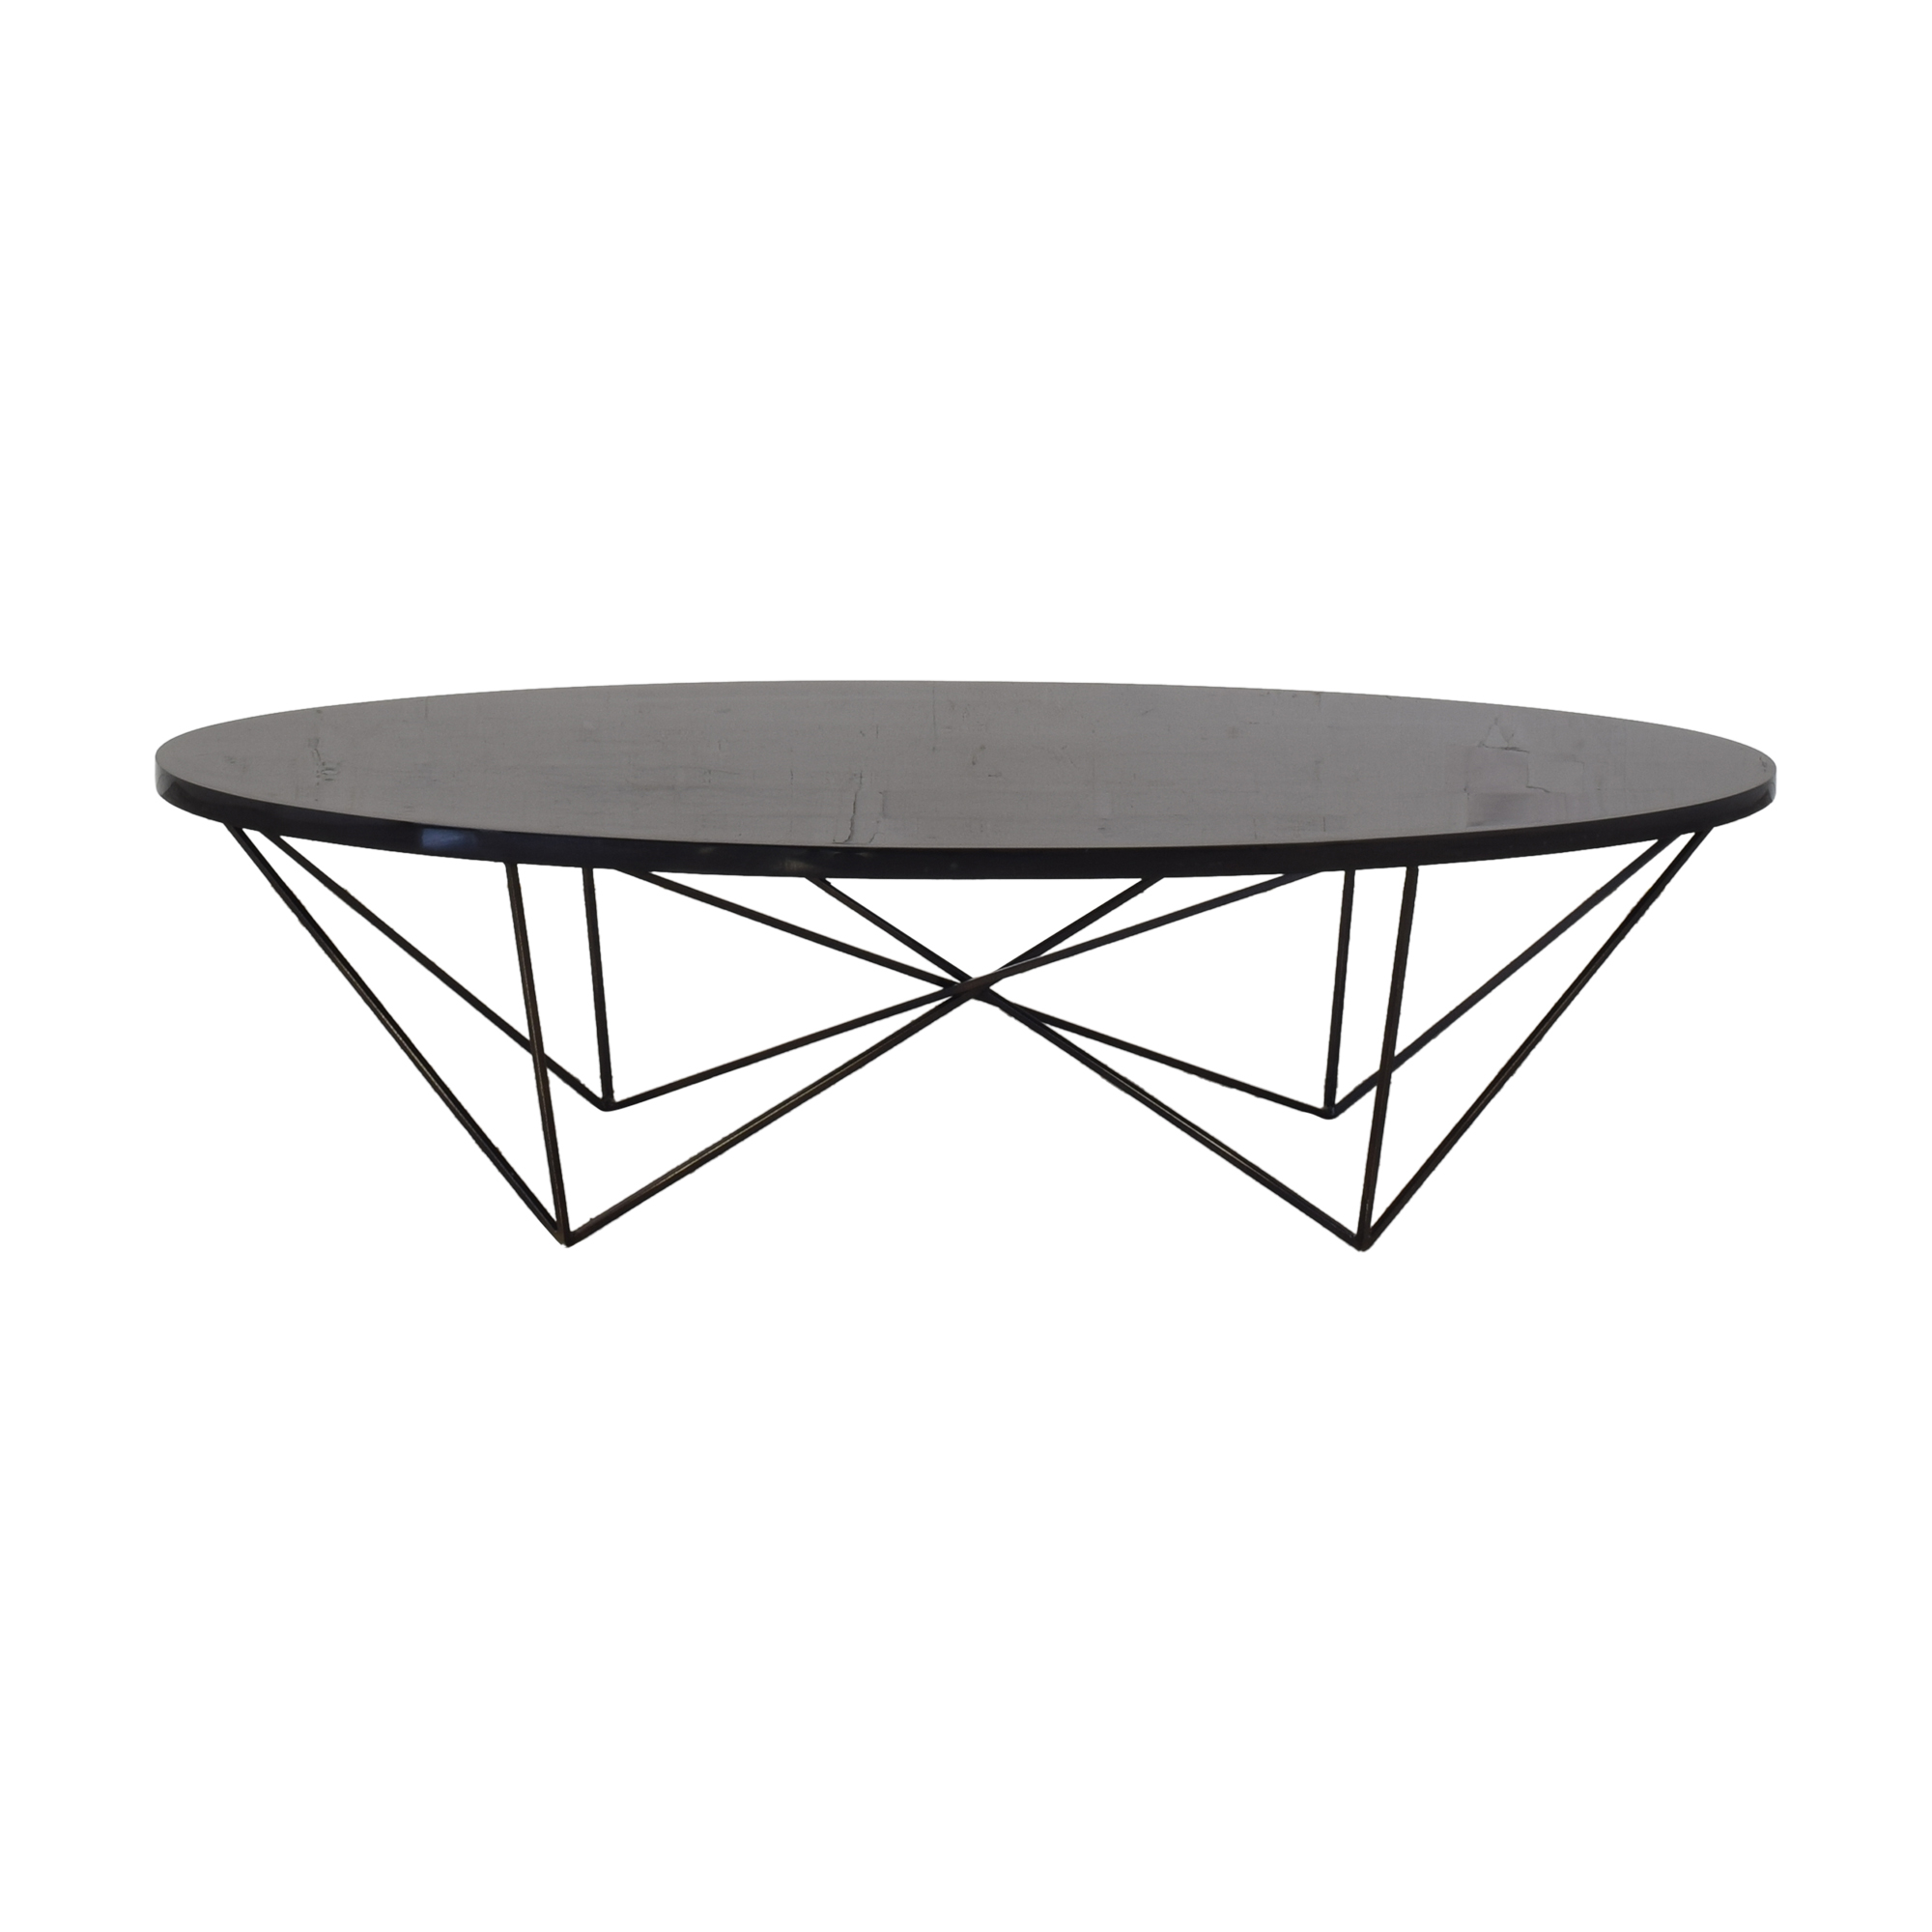 Oly Studio Oly Studio George Coffee Table dimensions